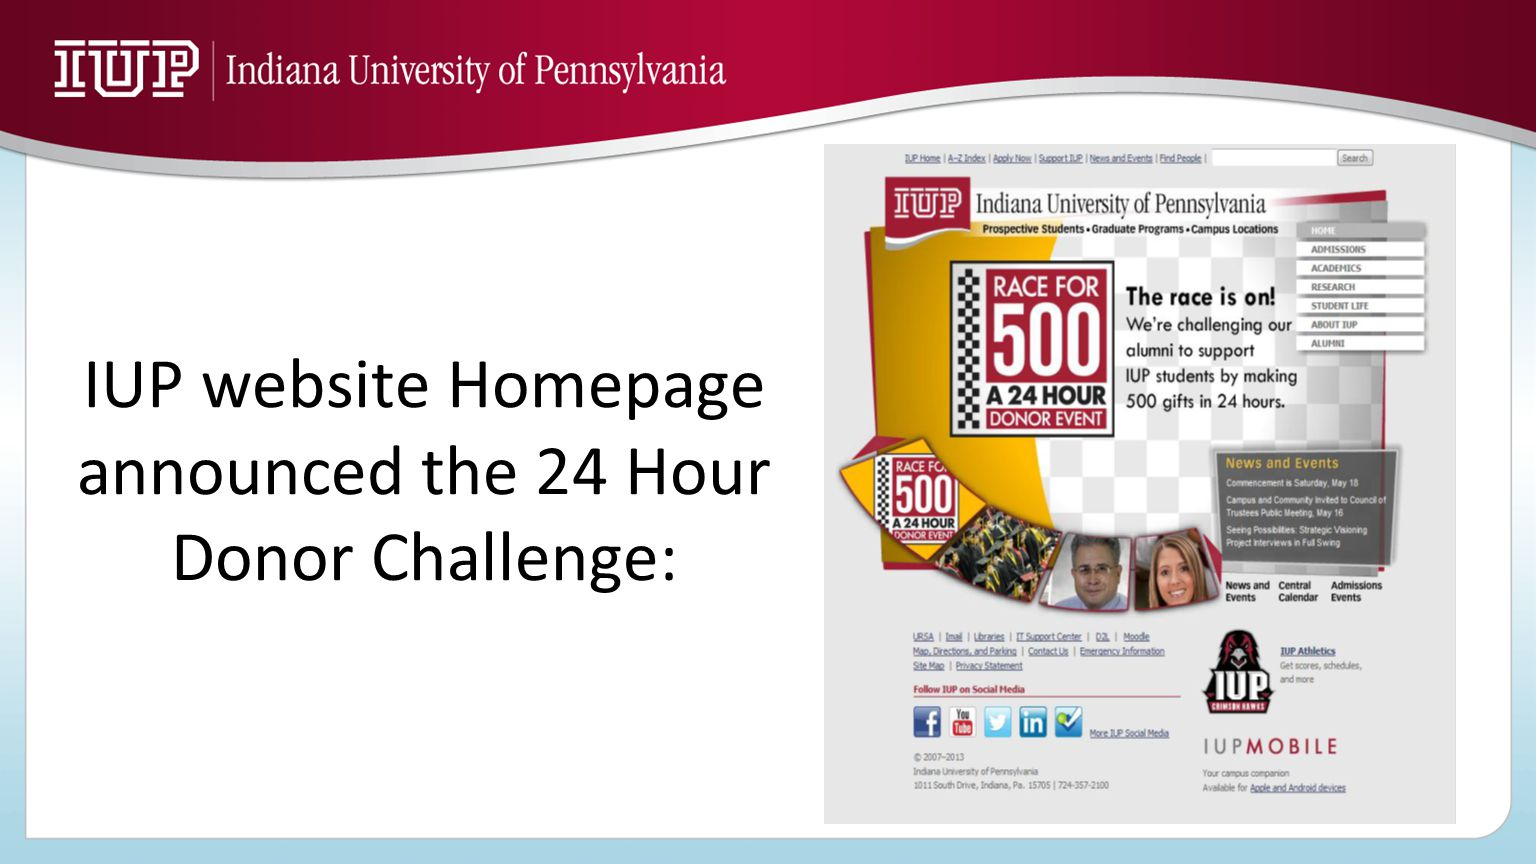 IUP website Homepage announced the 24 Hour Donor Challenge: